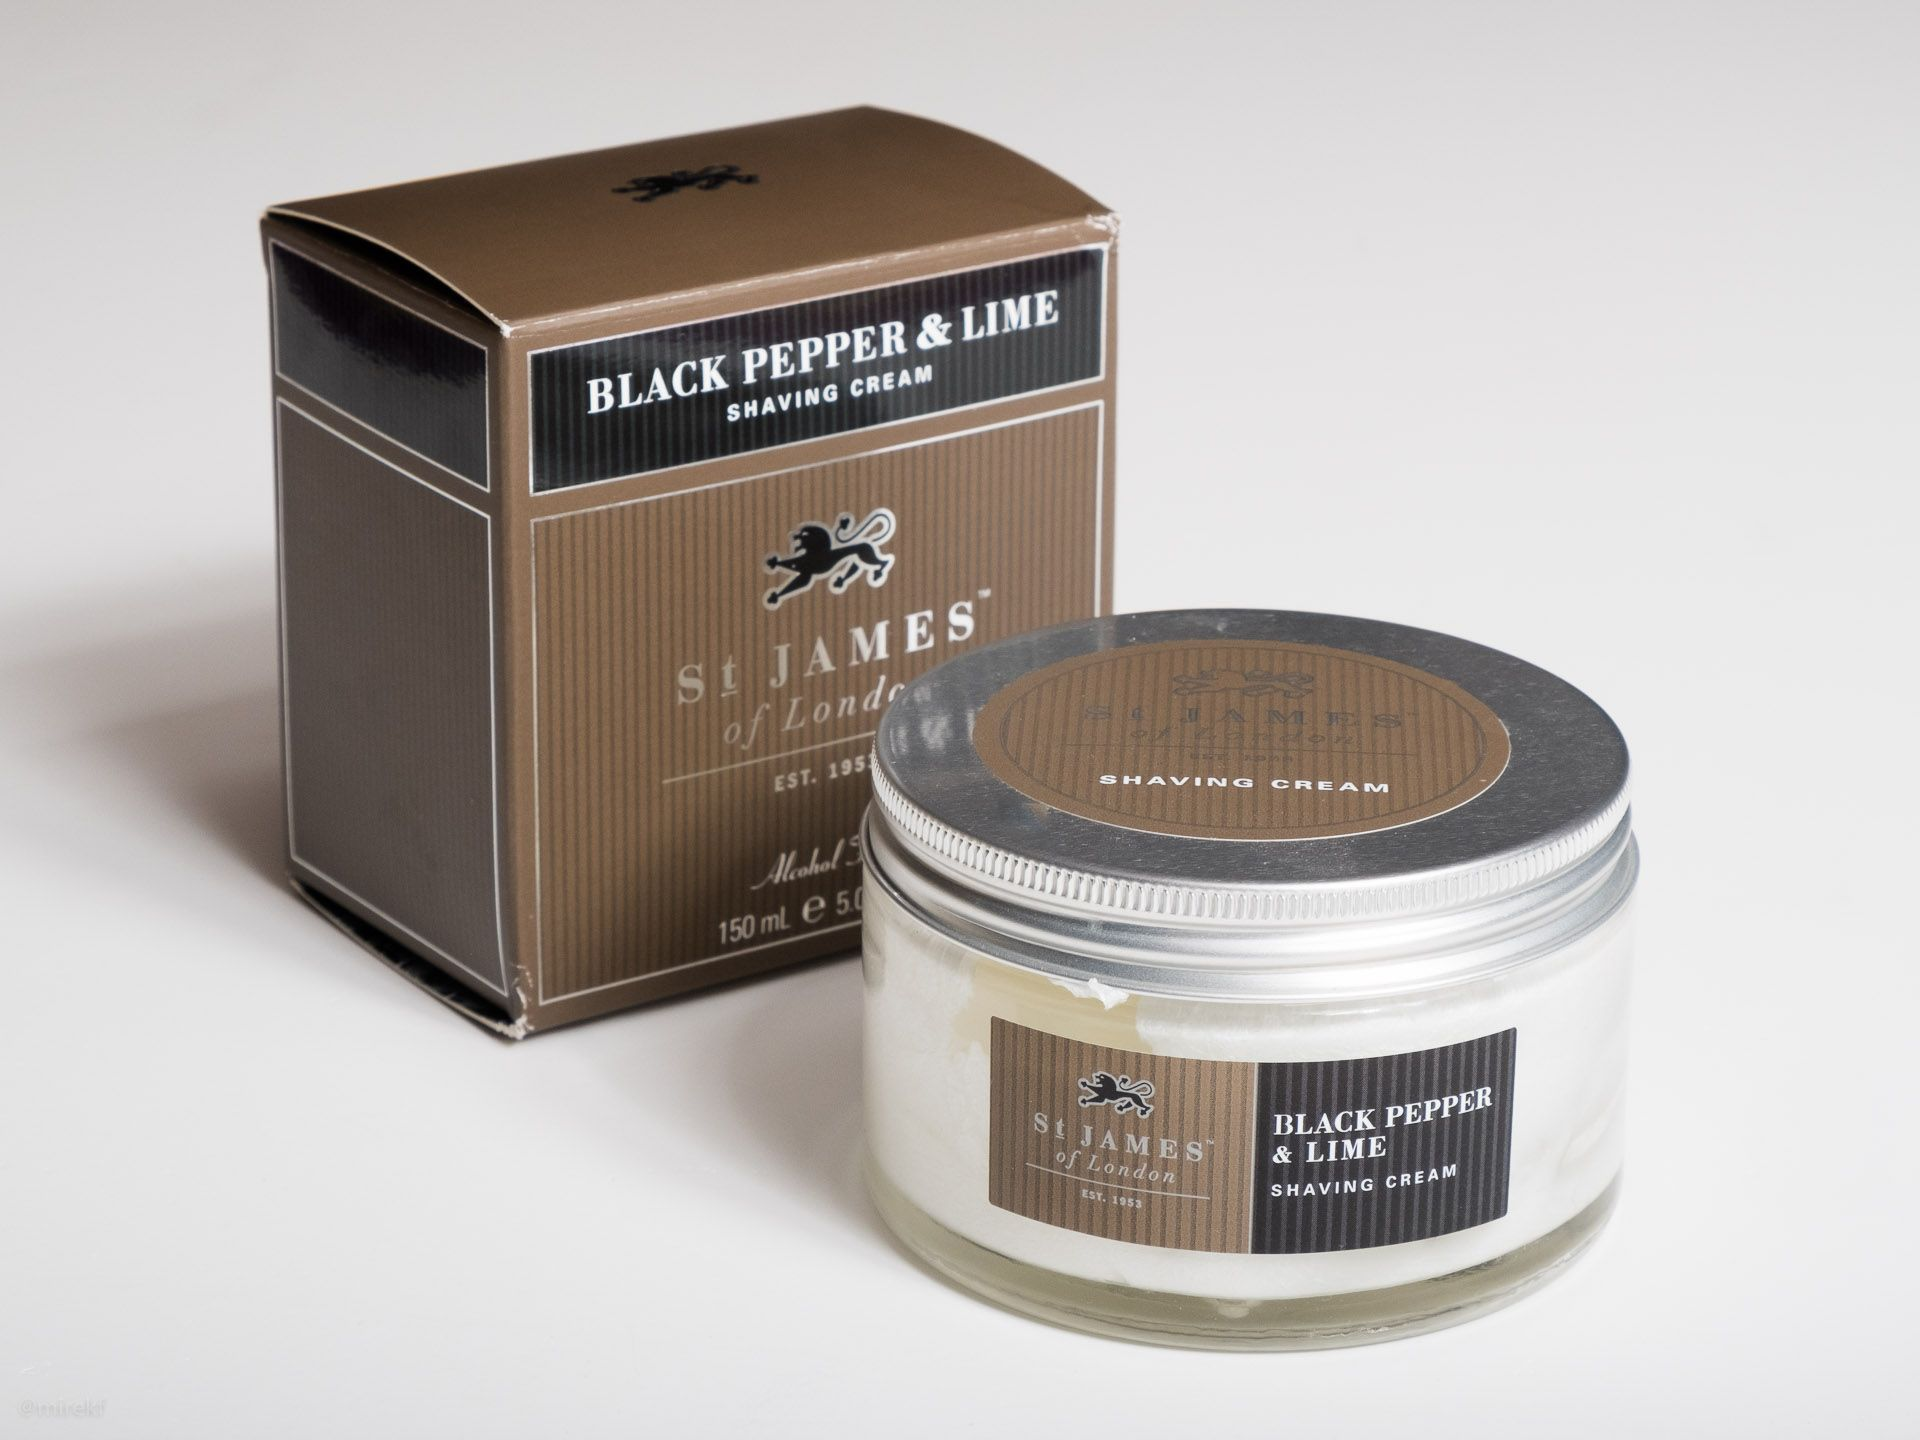 You are currently viewing St. James of London Black Pepper and Lime Shaving Cream – recenzja kremu do golenia